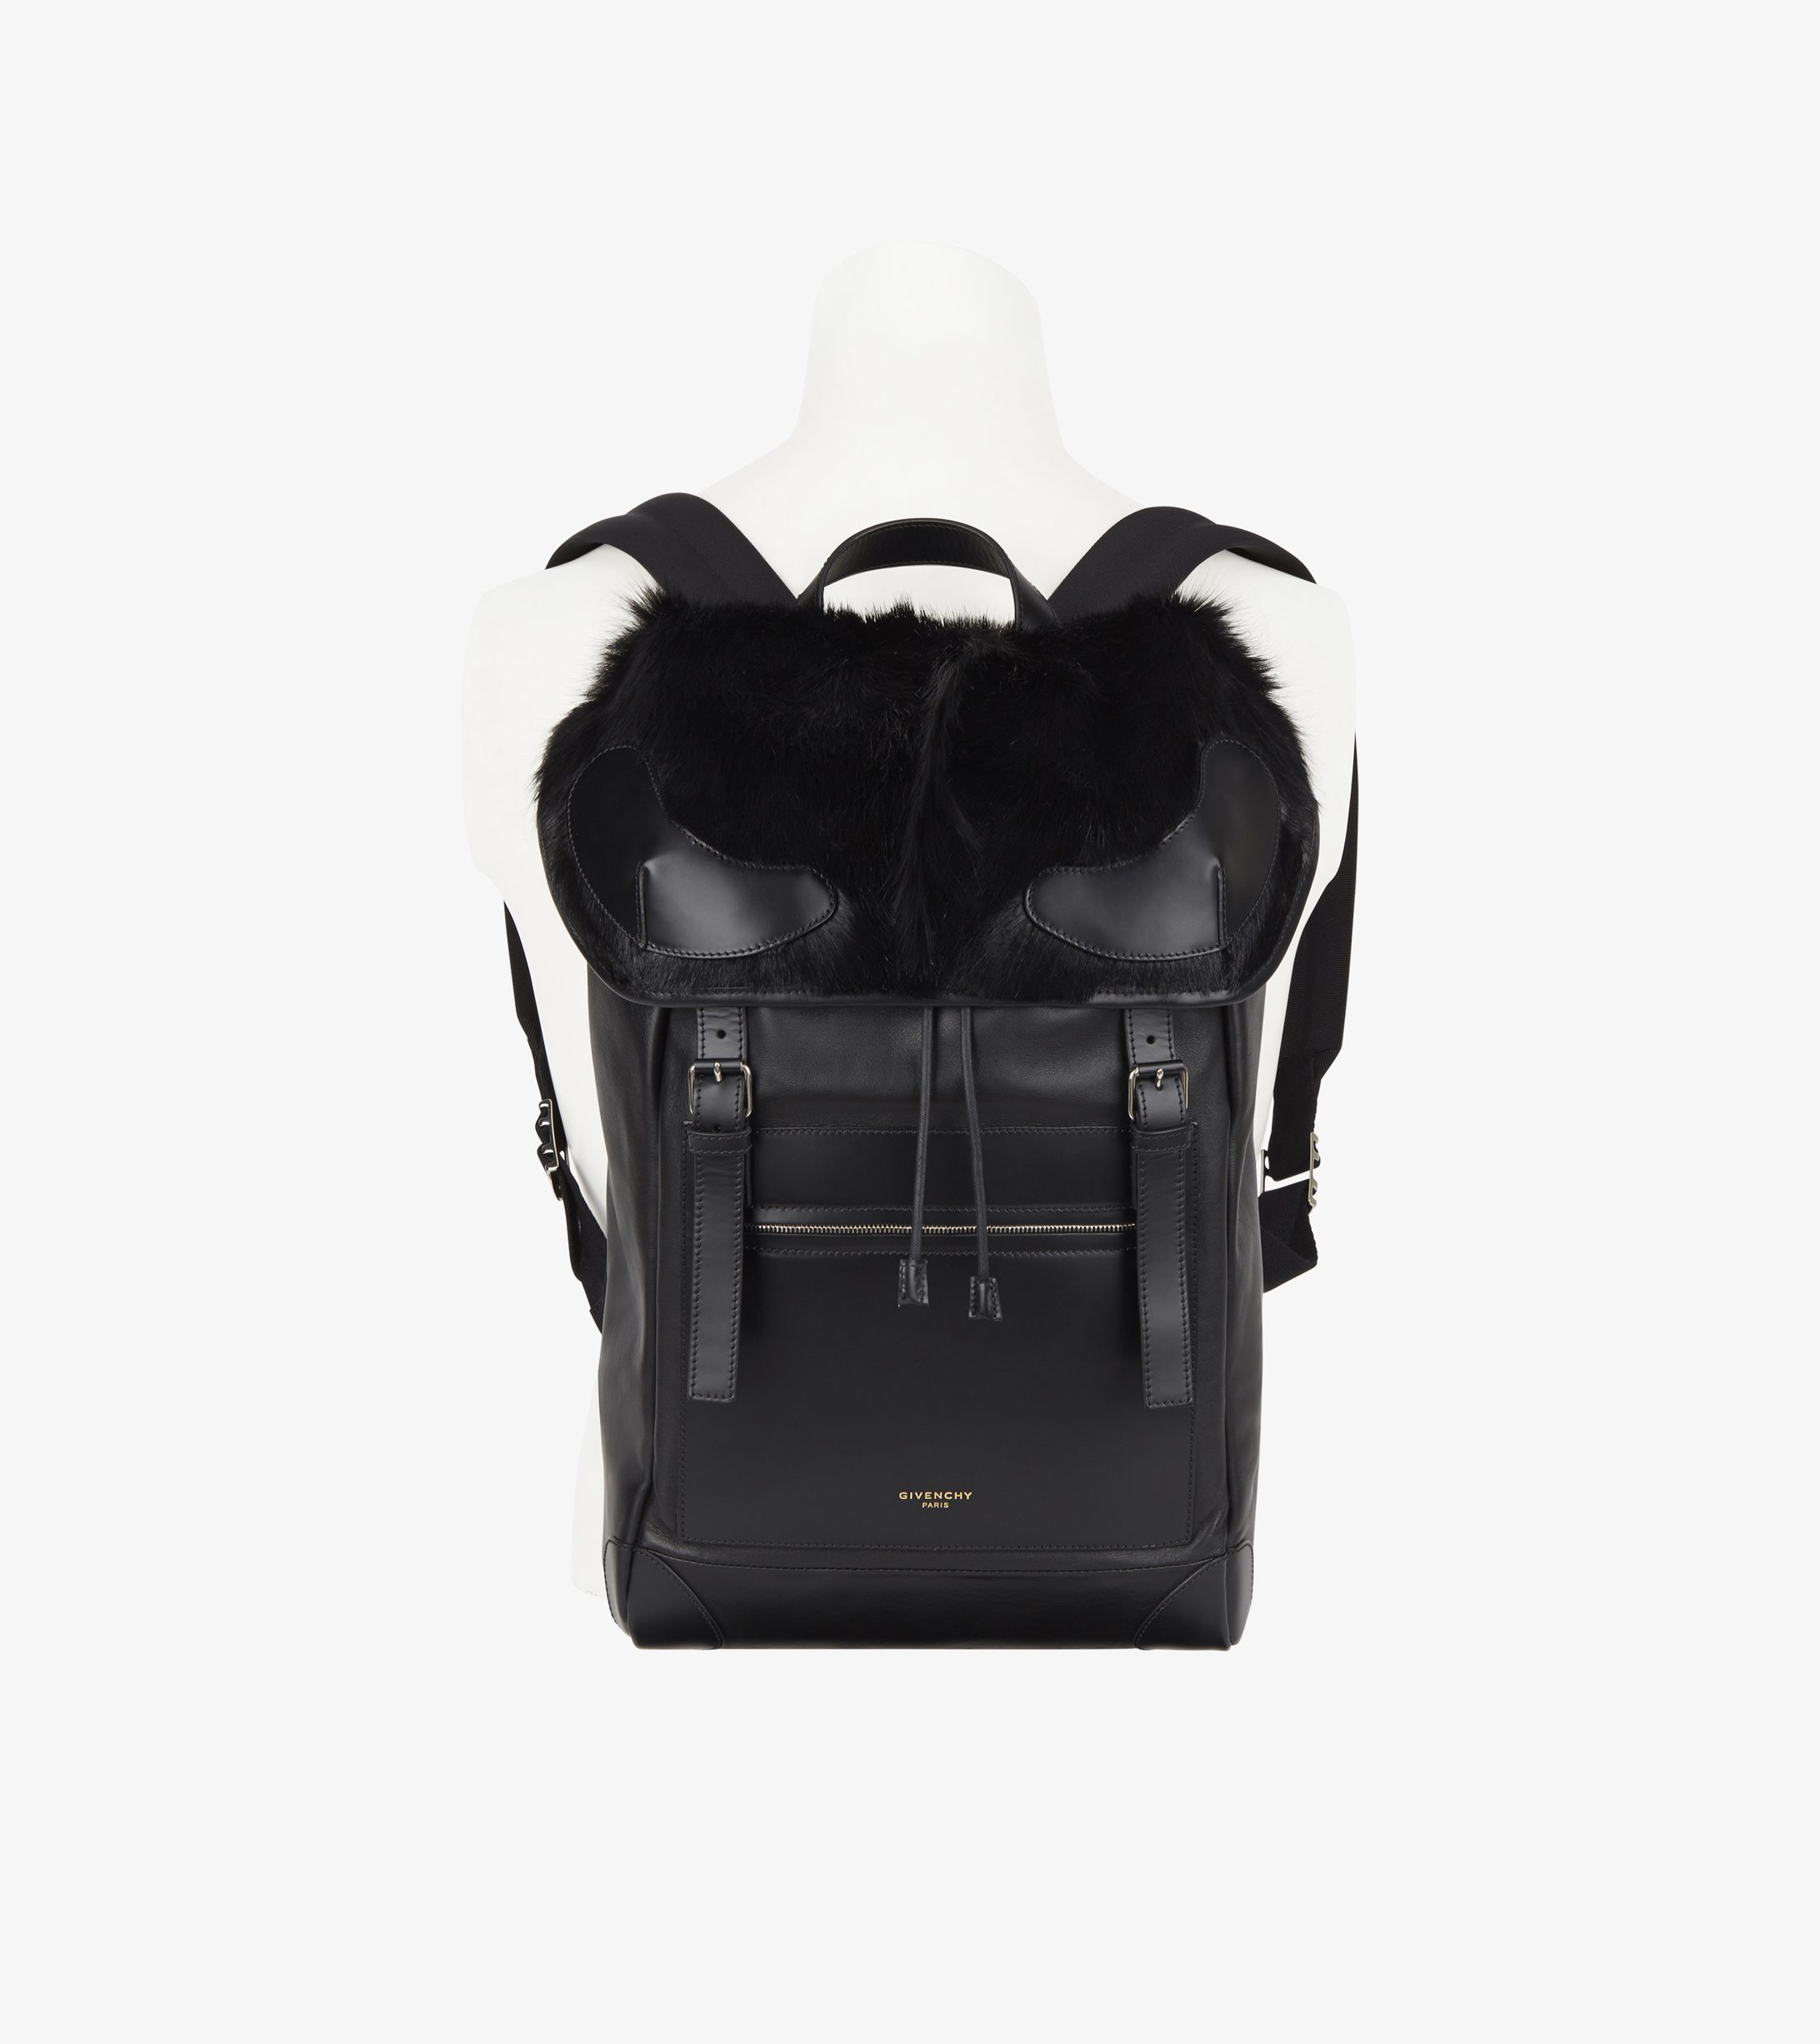 a55354db21 5 Luxury Men s Backpacks For Everyday Use